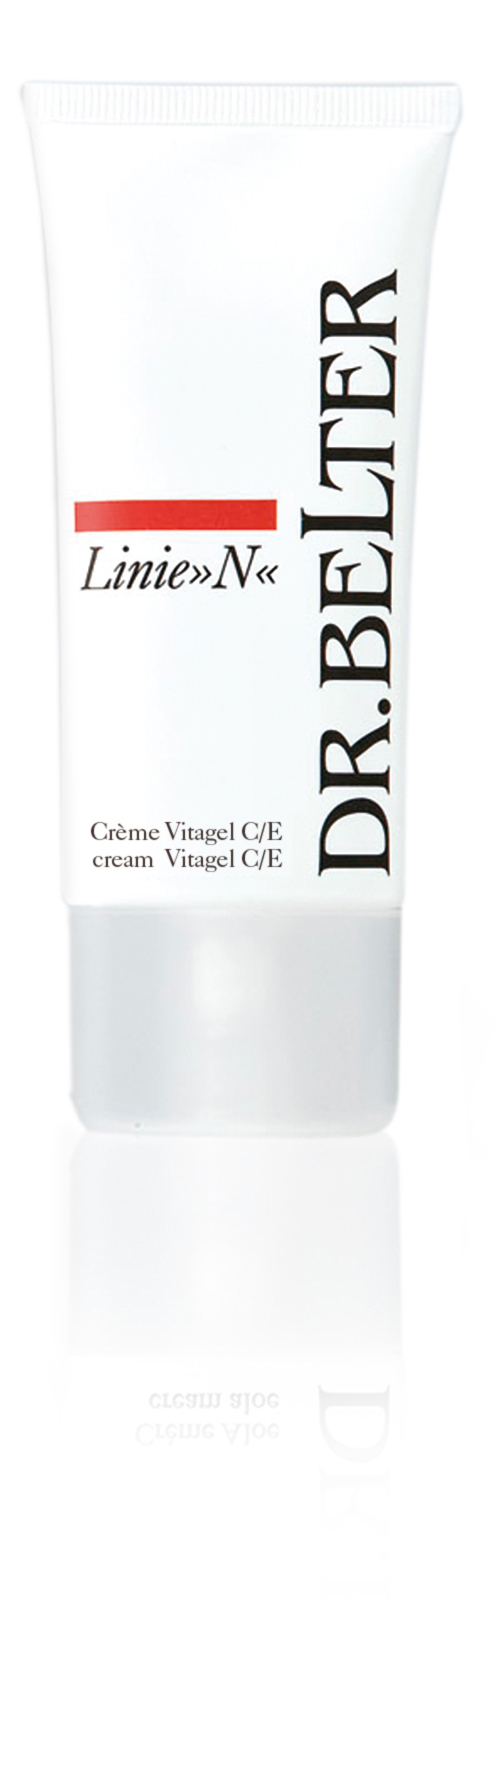 KRÉM VITAGEL C/E   50 ml